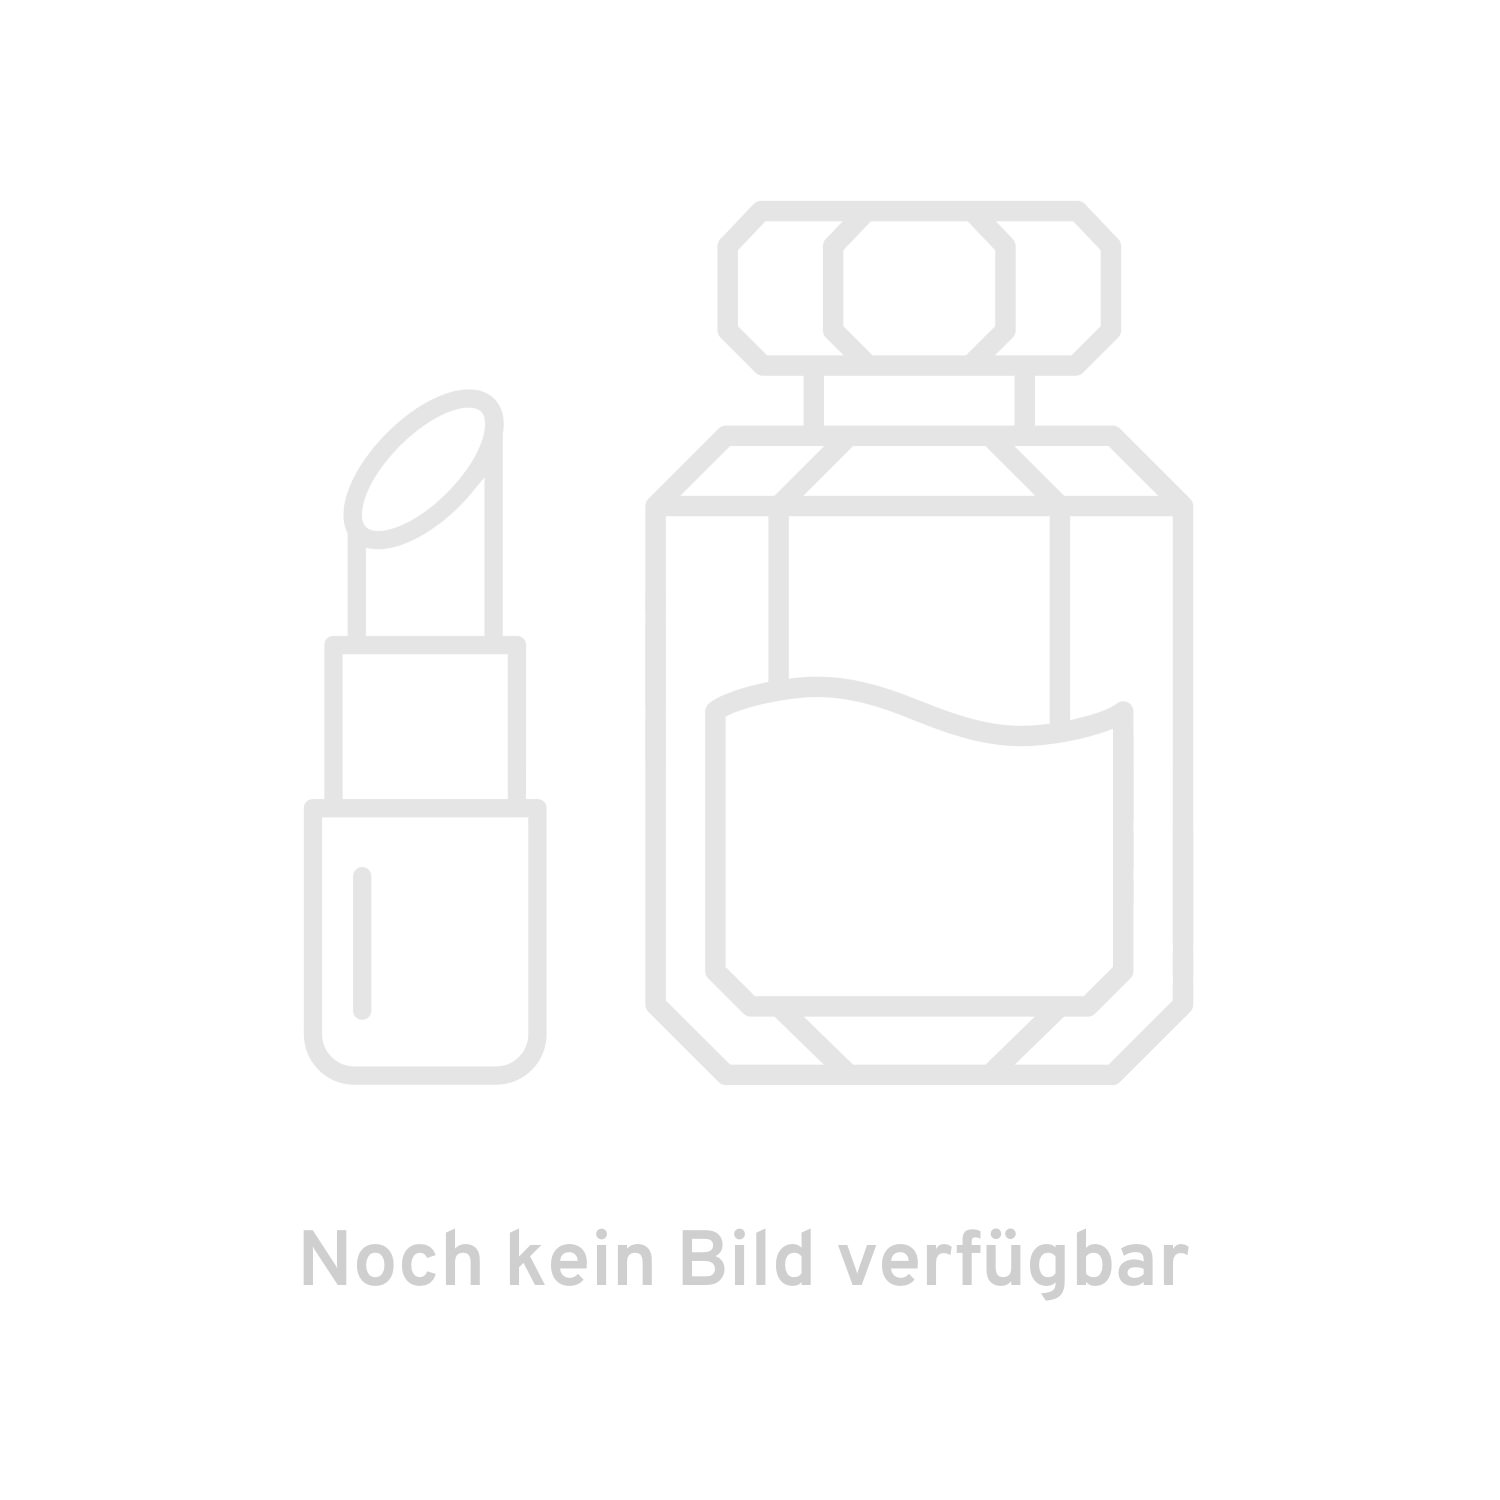 oudh accord gold body wash von molton brown bestellen bei ludwig beck beauty online. Black Bedroom Furniture Sets. Home Design Ideas